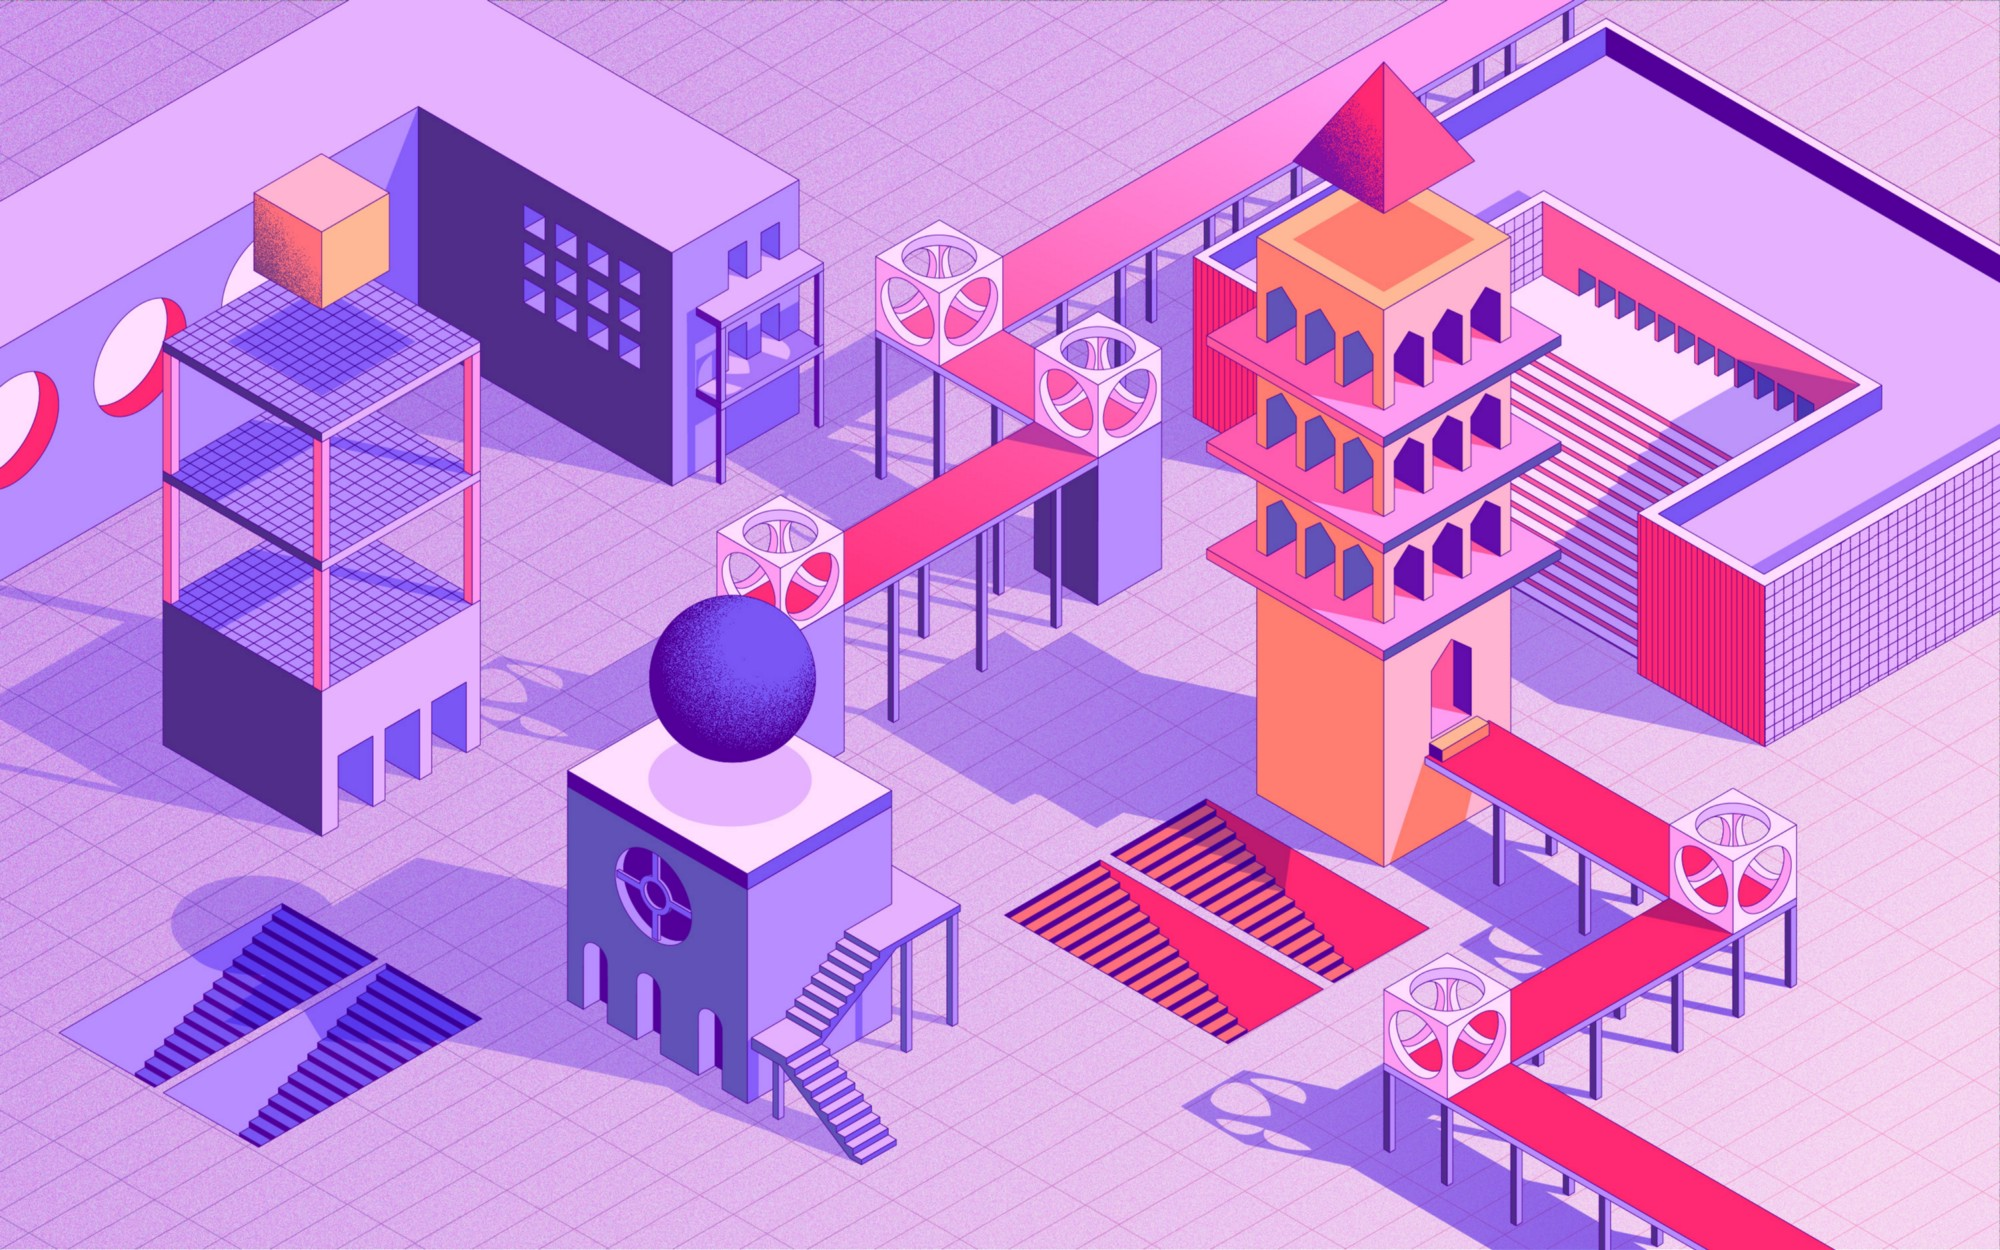 Isometric illustration of an abstract architectural space